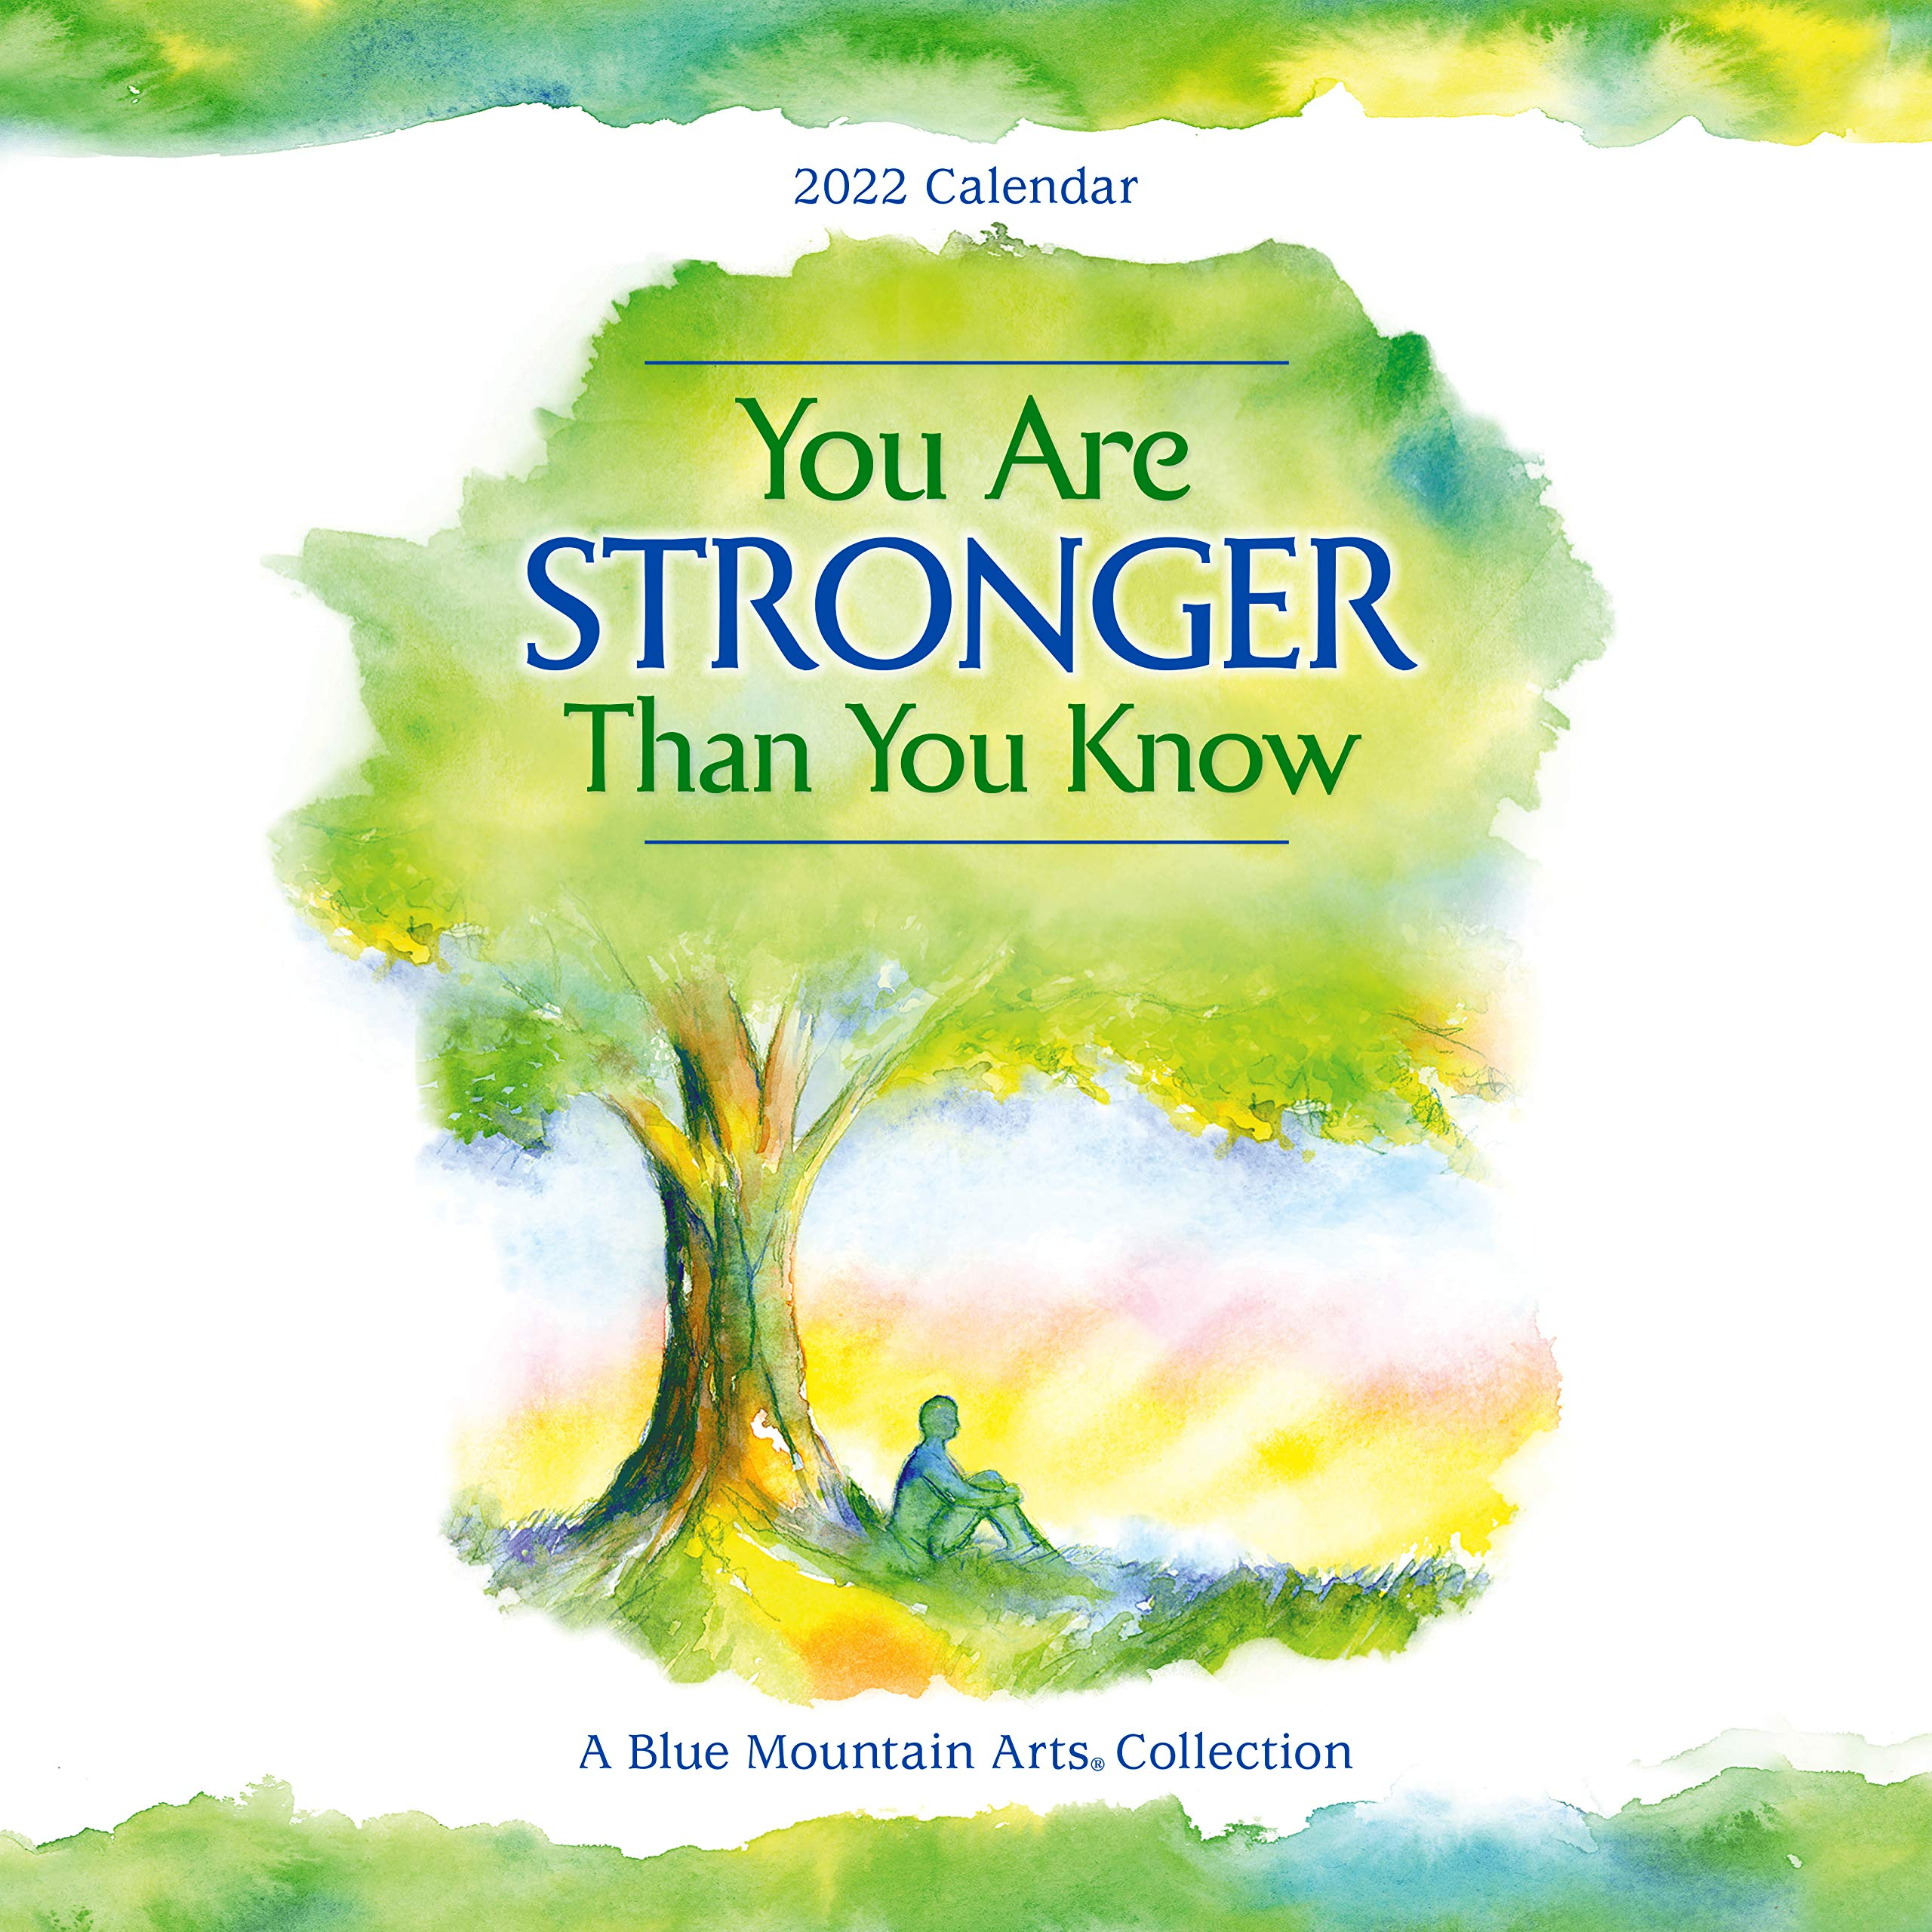 Cu Boulder Calendar Spring 2022.Blue Mountain Arts 2022 Calendar You Are Stronger Than You Know 12 X 12 In 12 Month Hanging Wall Calendar Offers Encouragement And Positive Thoughts For Anyone A Blue Mountain Arts Collection 0087400260098 Amazon Com Books